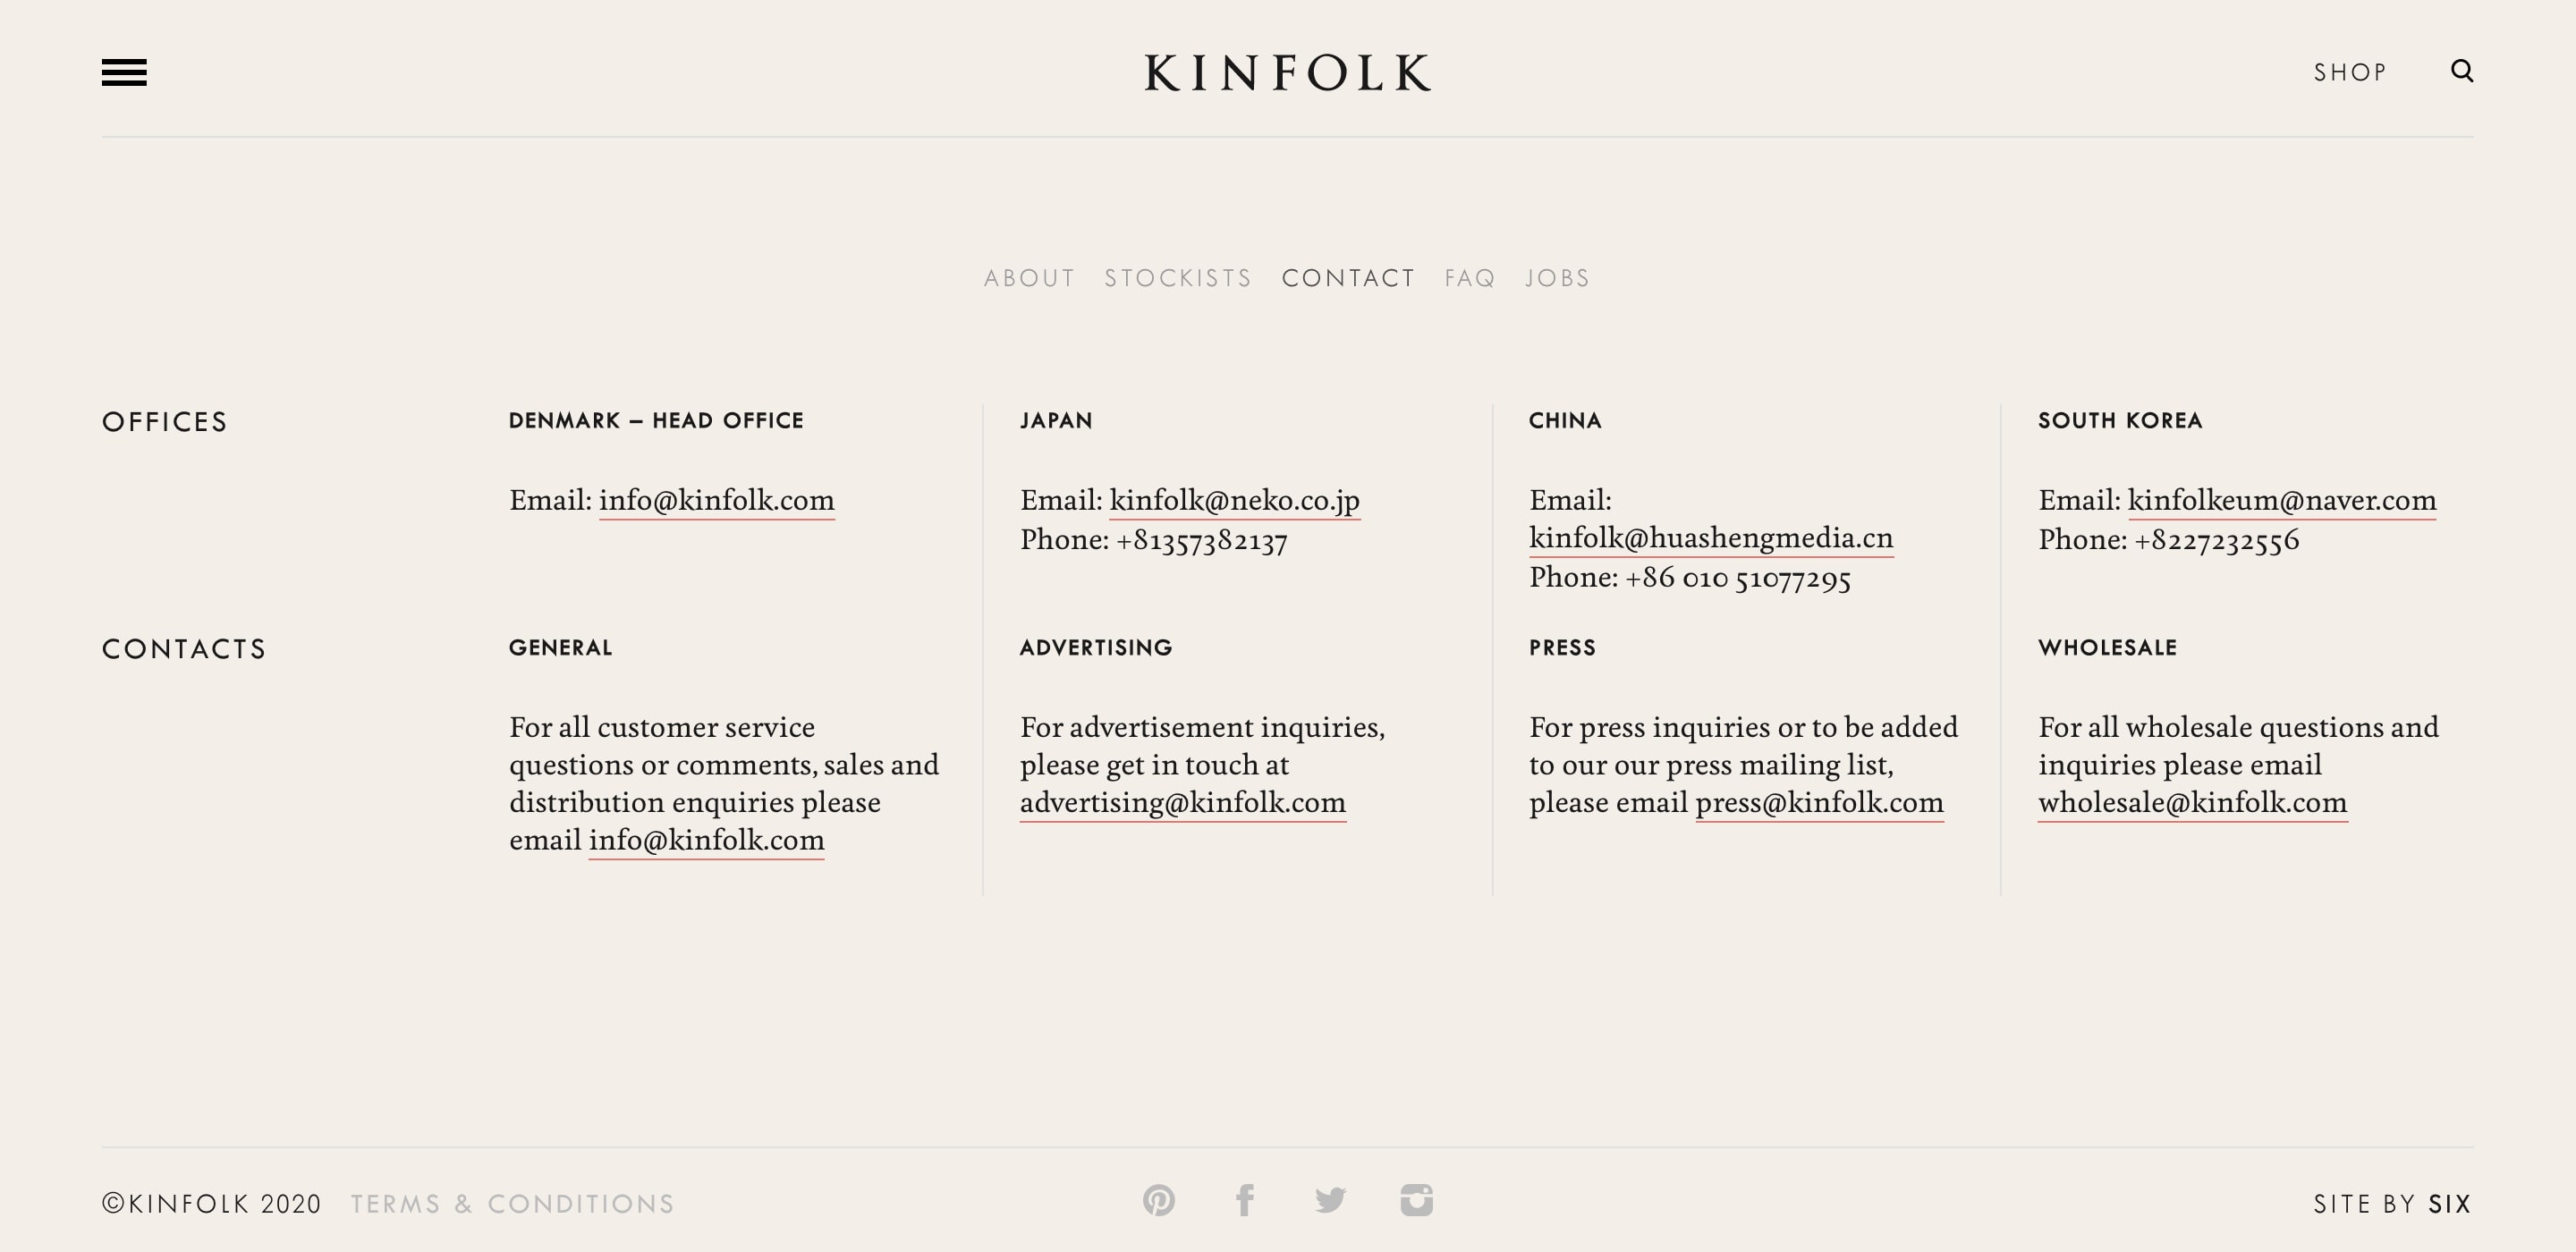 kinfolk contact page design